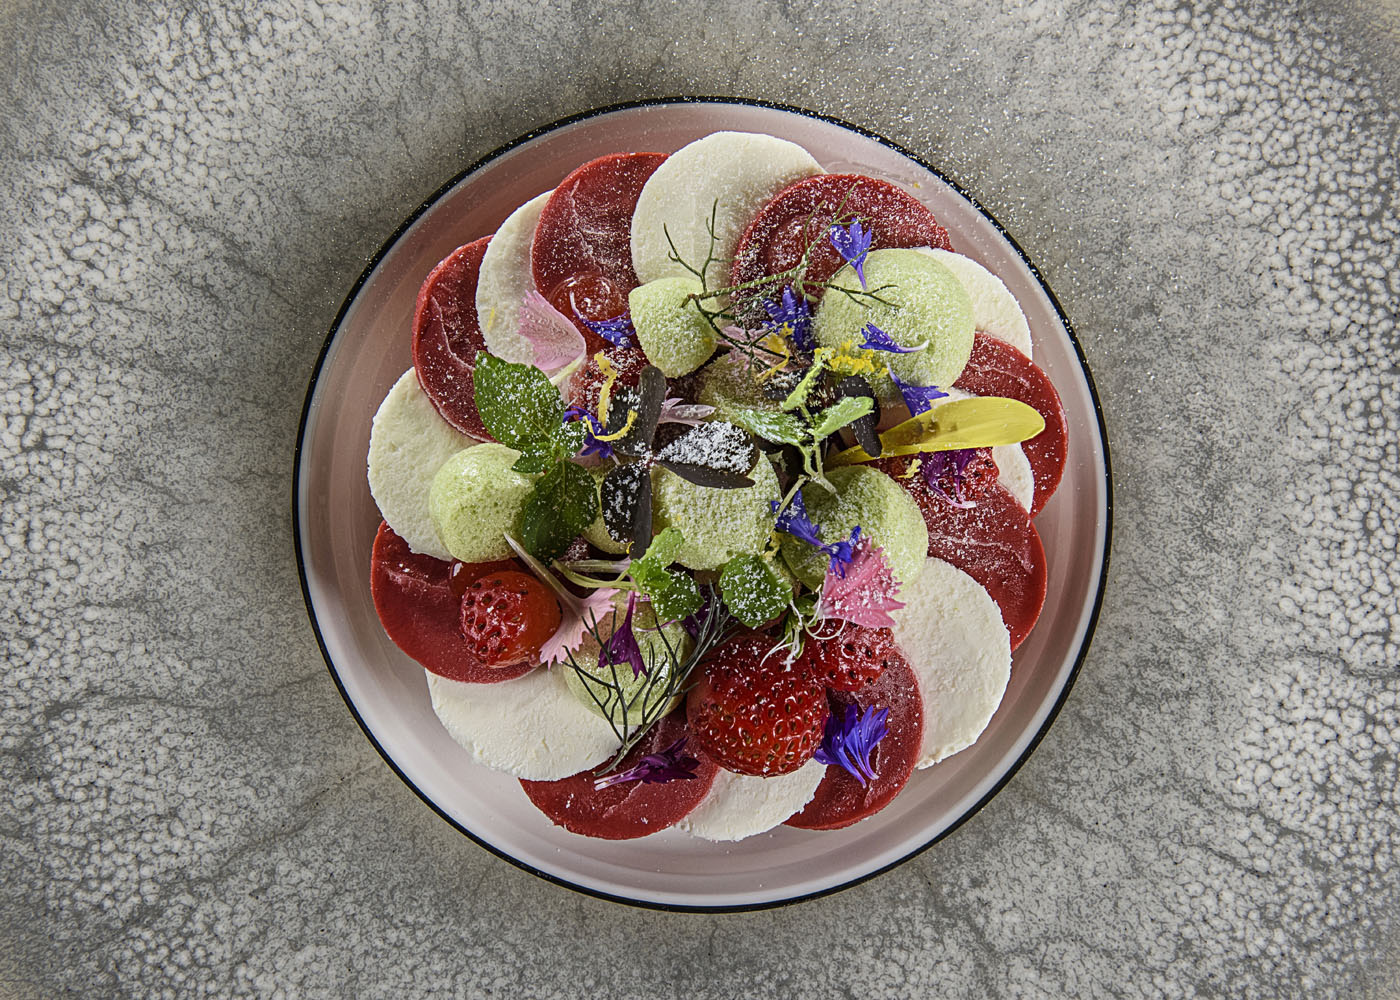 Strawberry - strawberry-basil cremeaux, alpines, garden herbs, strawberry sorbet